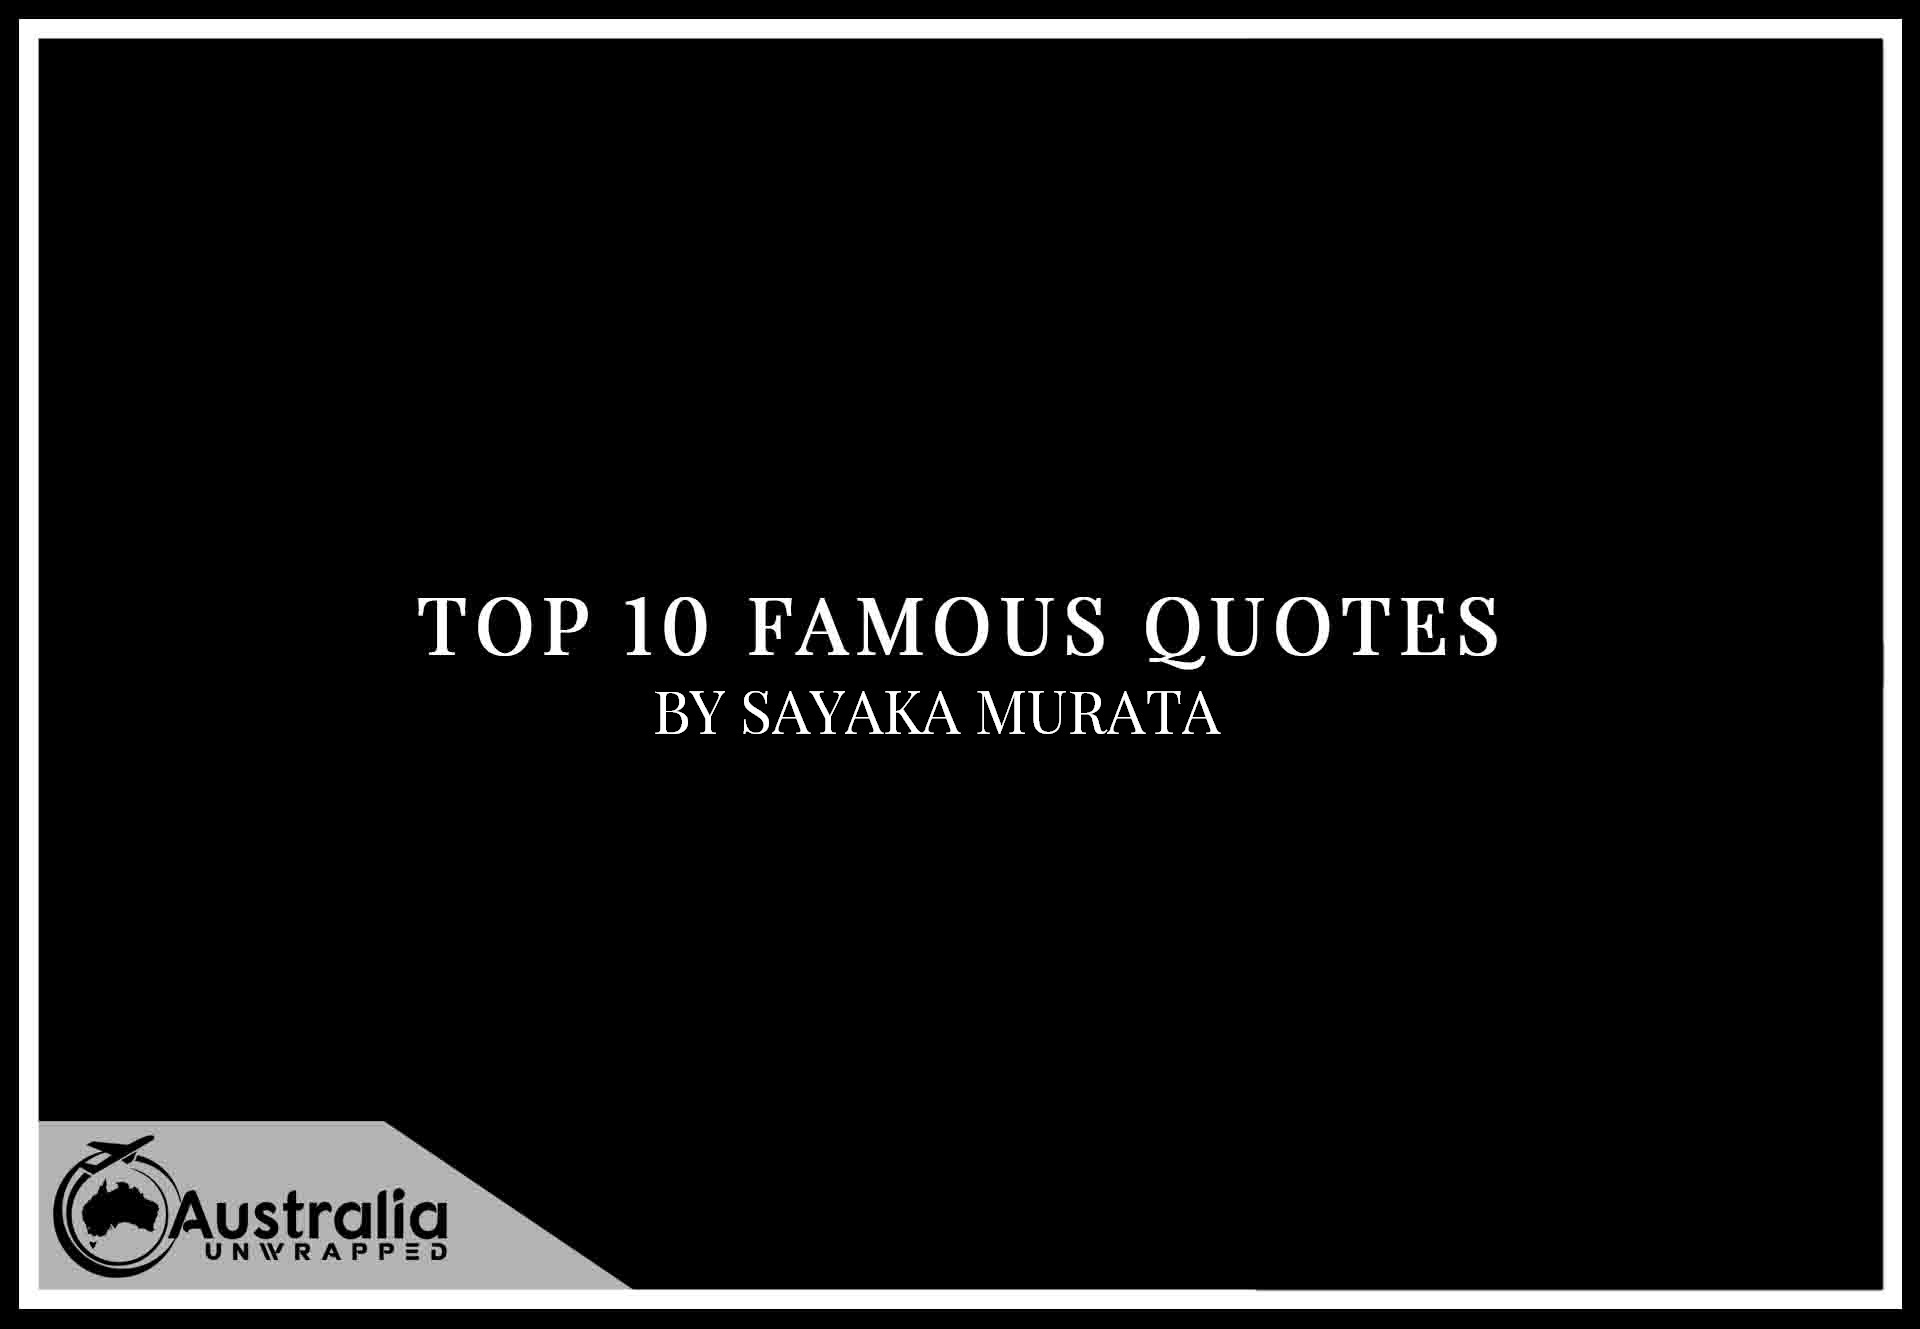 Top 10 Famous Quotes by Author Sayaka Murata